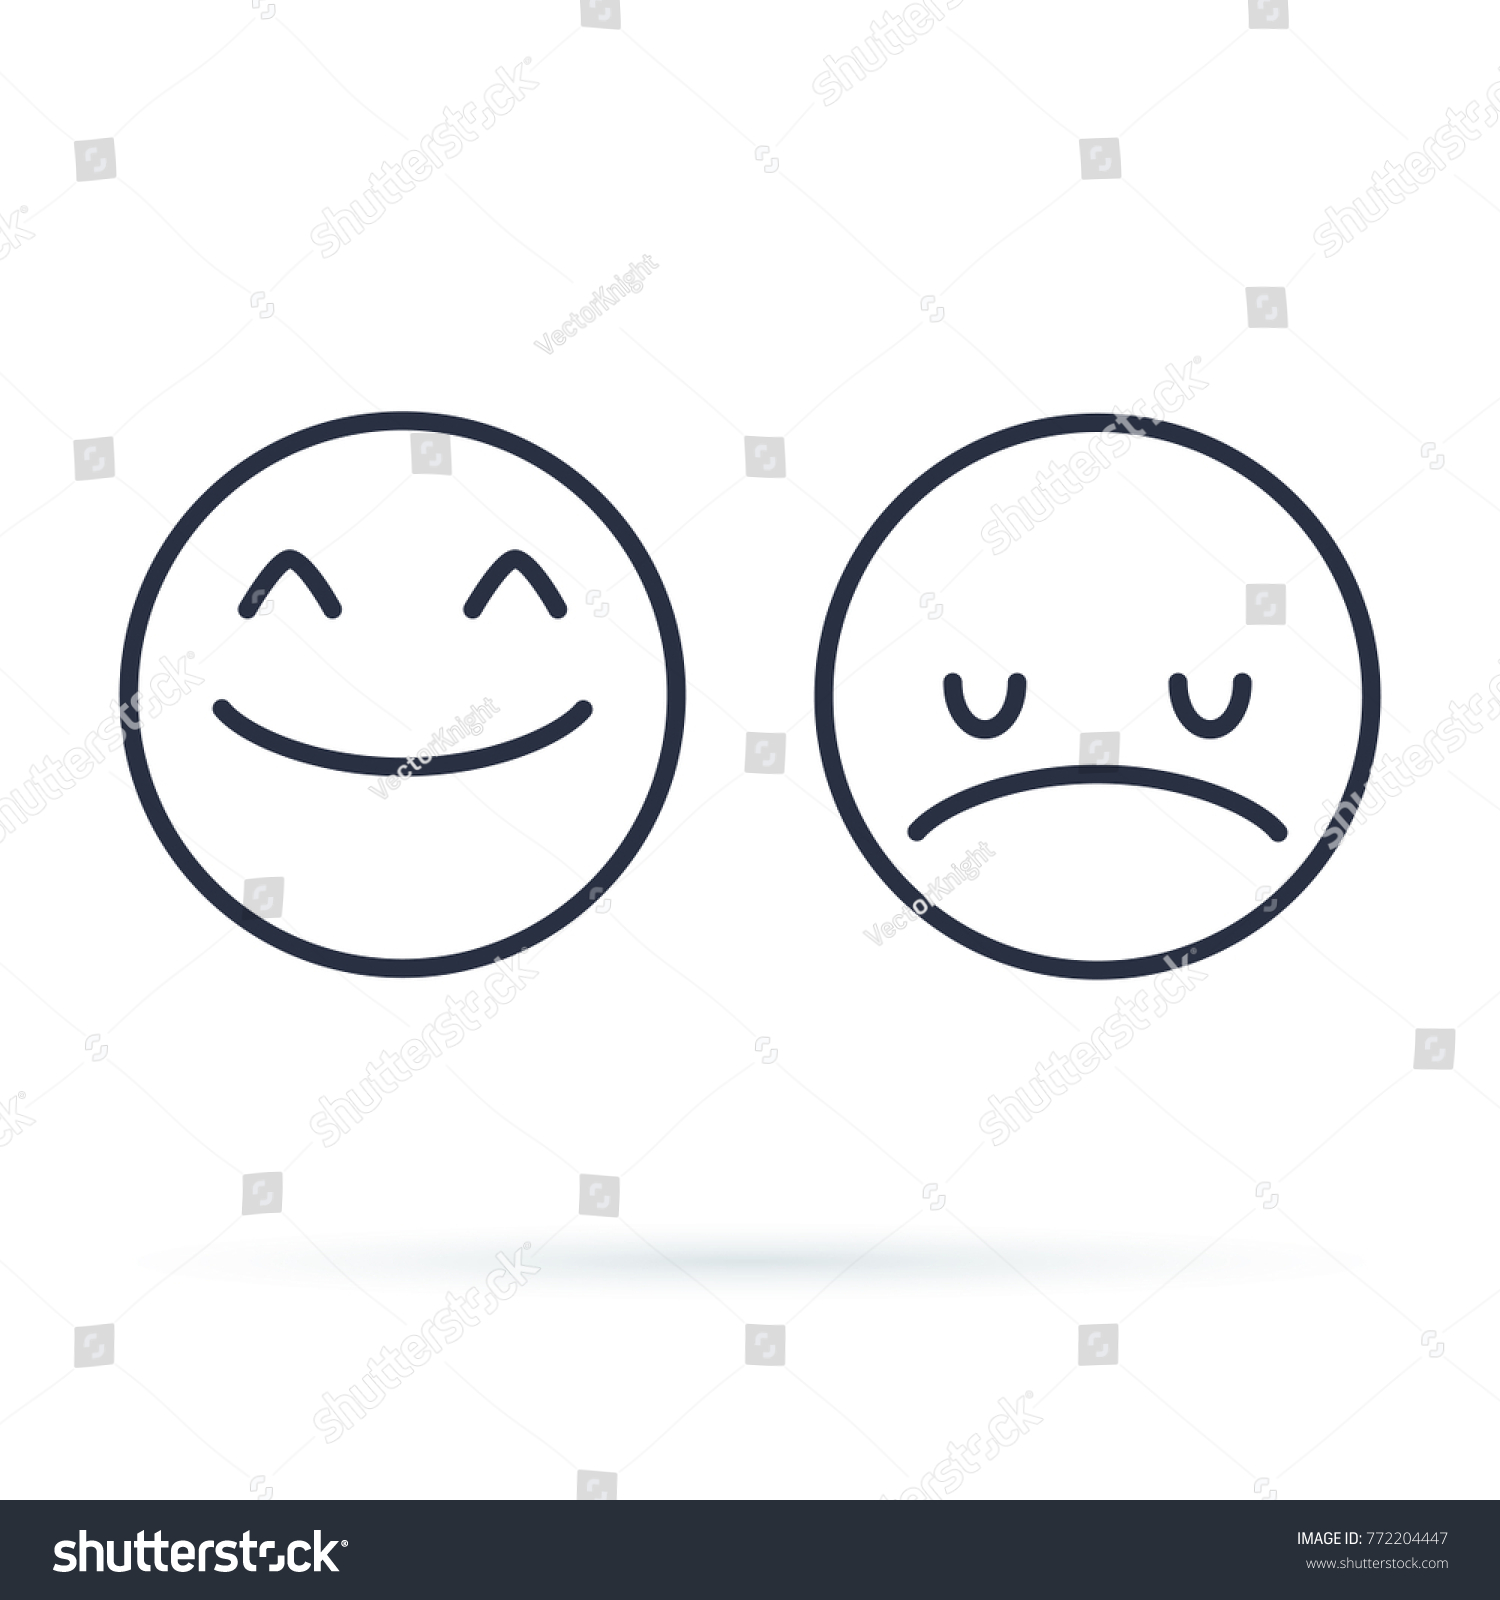 Smiling face smiling eyes sad emoticon stock illustration 772204447 smiling face with smiling eyes and sad emoticon line icon outline sign linear style biocorpaavc Images